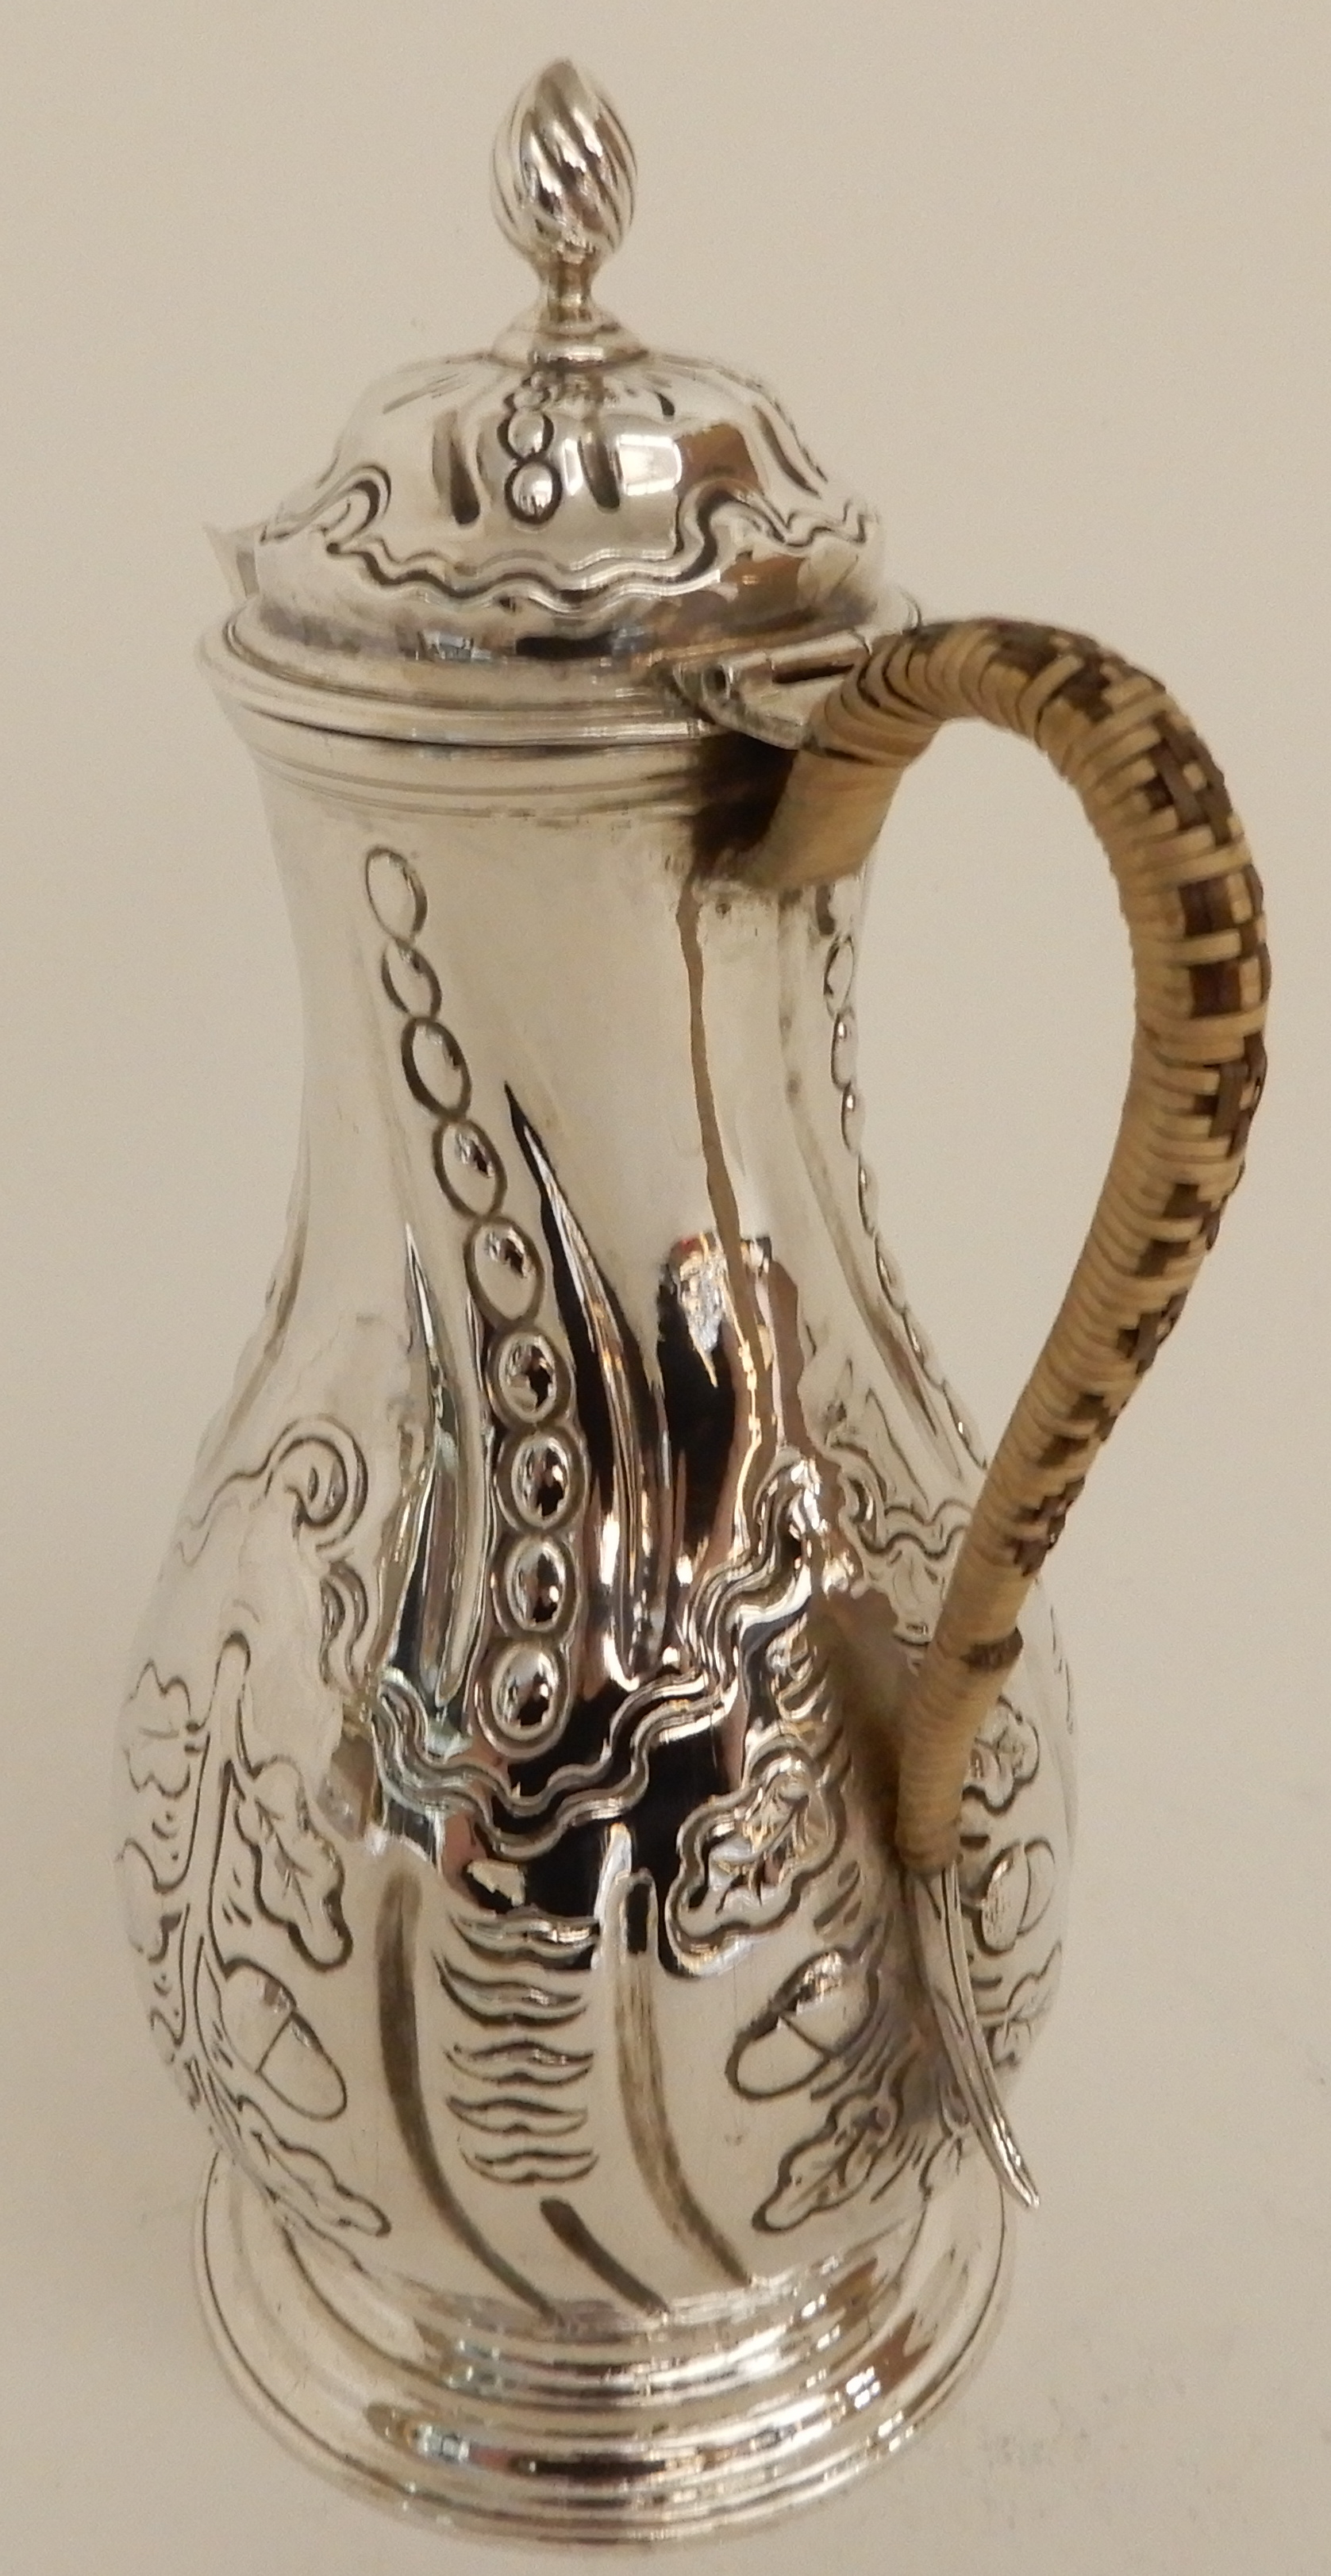 Lot 165 - AN EARLY GEORGE III SILVER CHOCOLATE POT by Thomas Whipham and Charles Wright, London 1763, of